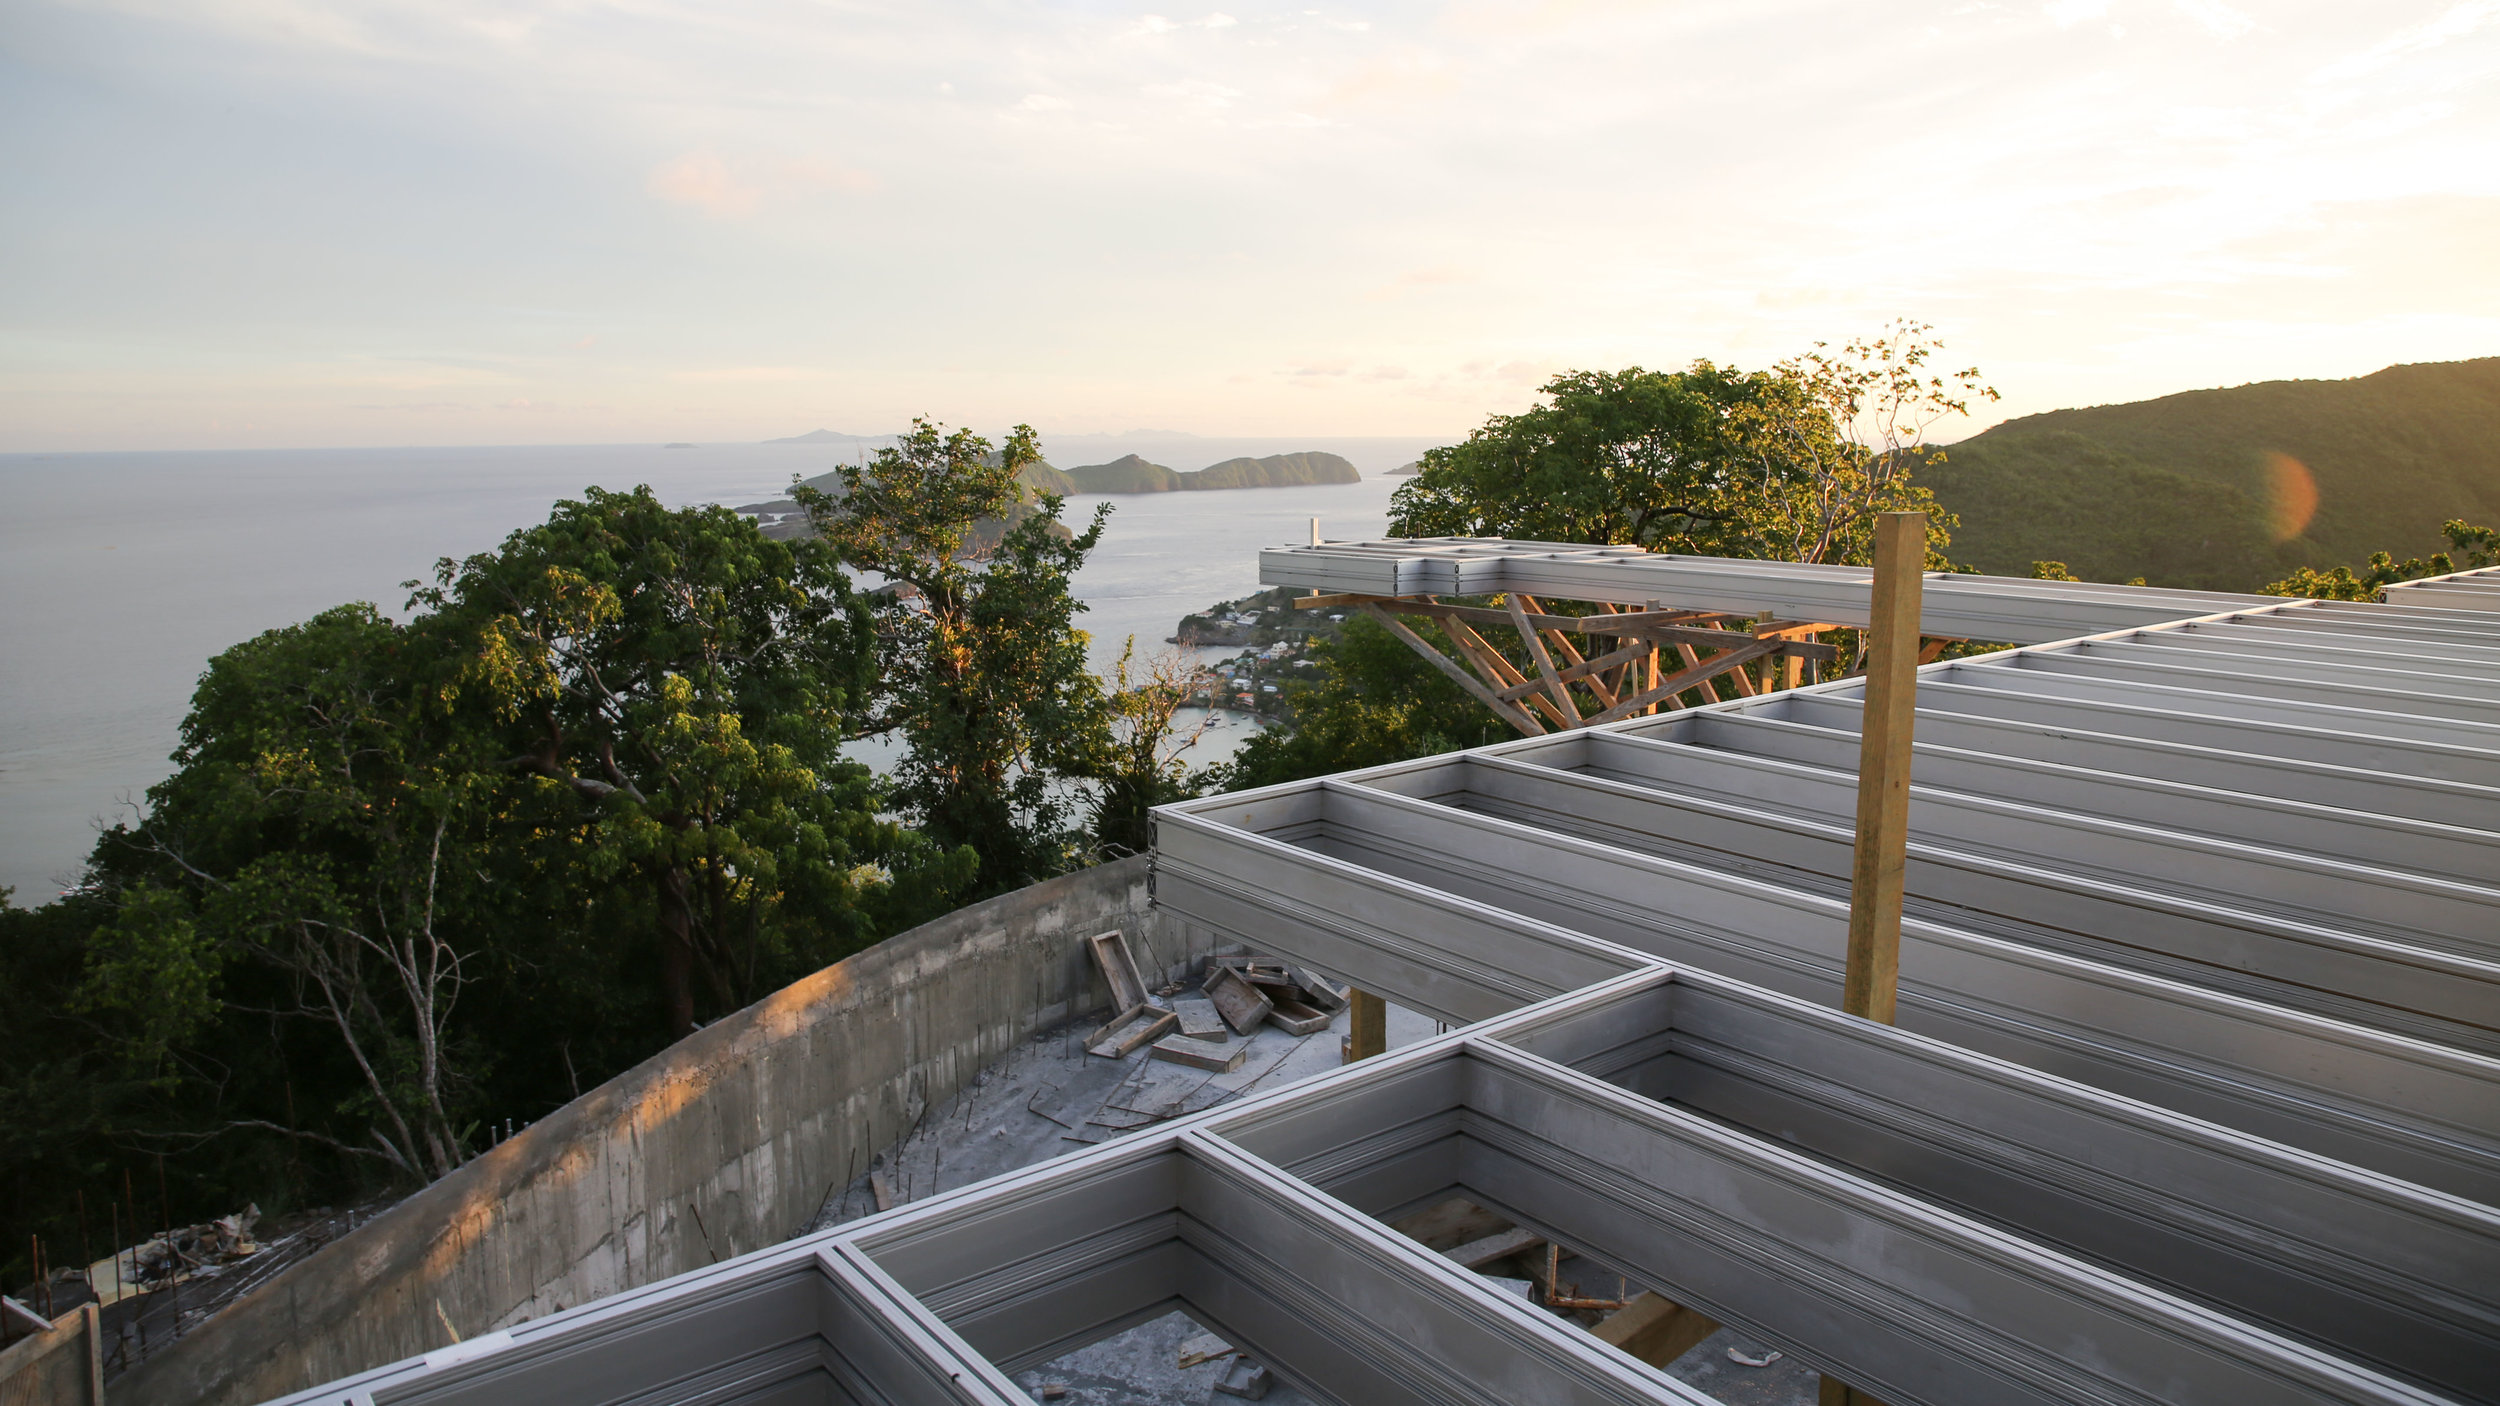 S.E.A.-Studio-Environmental-Architecture-David-Hertz-FAIA-Sail-House-Cloud9-Bequia-Saint-Vincent-Grenadines-Caribbean-Island-sustainable-regenerative-restorative-green-design-hospitality-tropical-resort-hotel-biomimetic-tensile-structure-progress-4.jpg